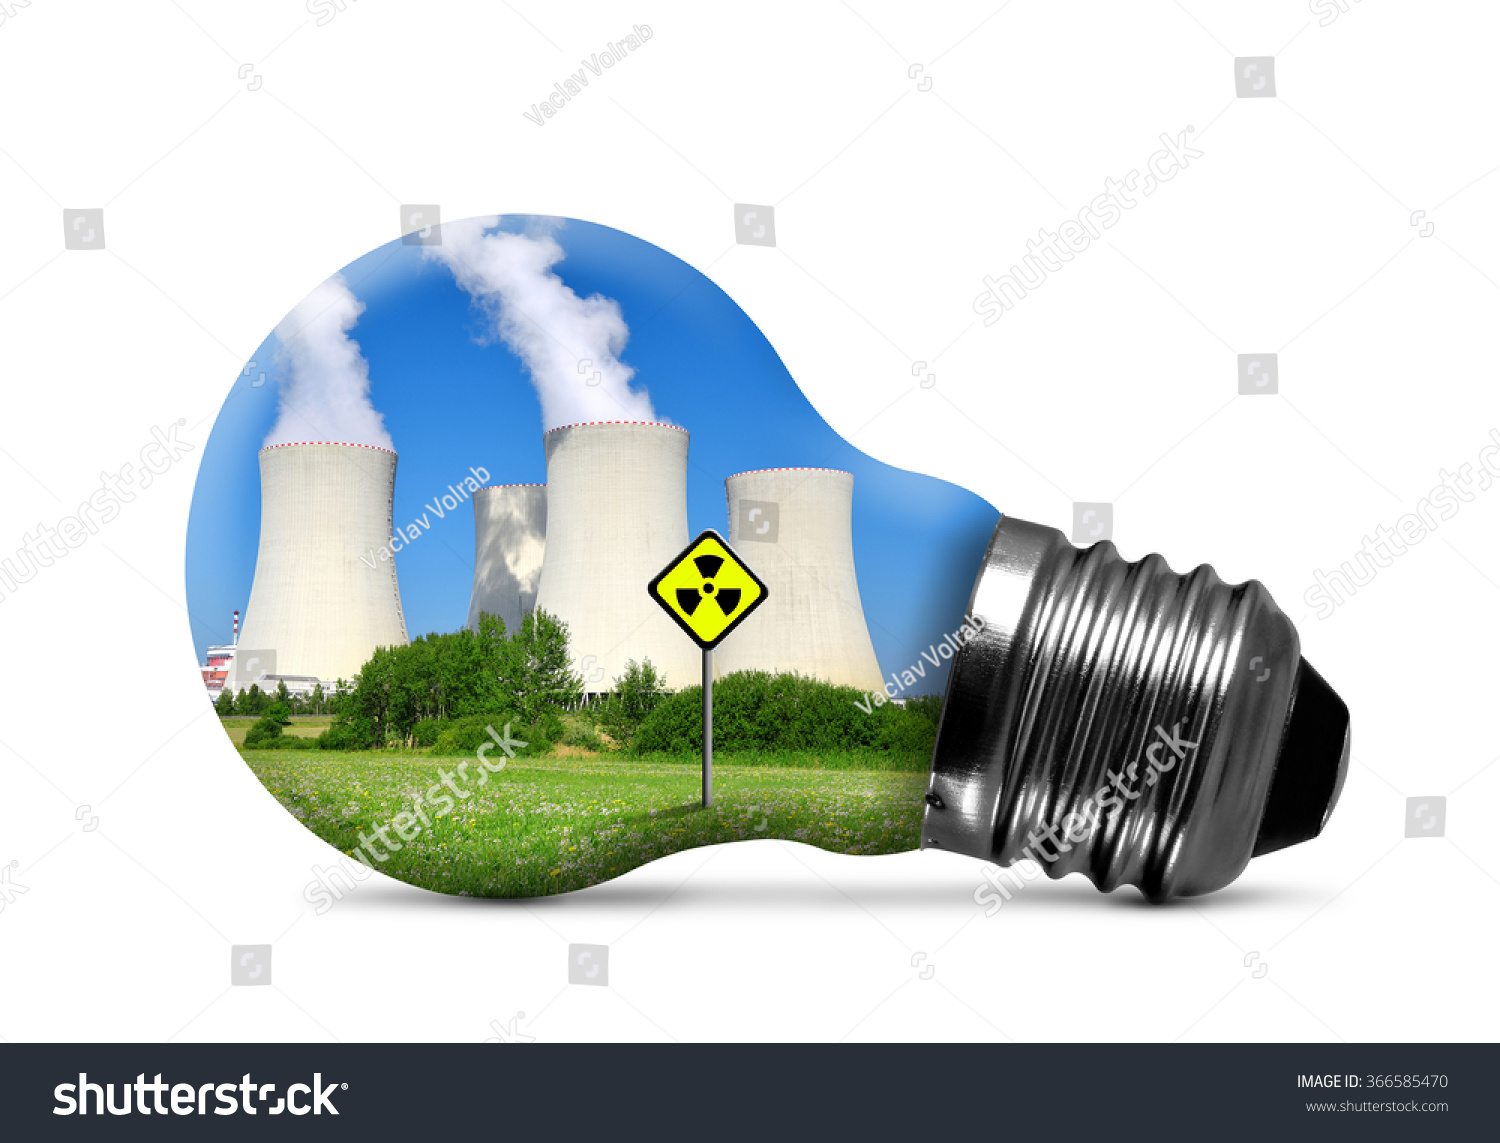 nuclear power terms Since about 2001 the term nuclear renaissance has been used to refer to a possible nuclear power industry revival, driven by rising fossil fuel prices and new concerns about meeting.